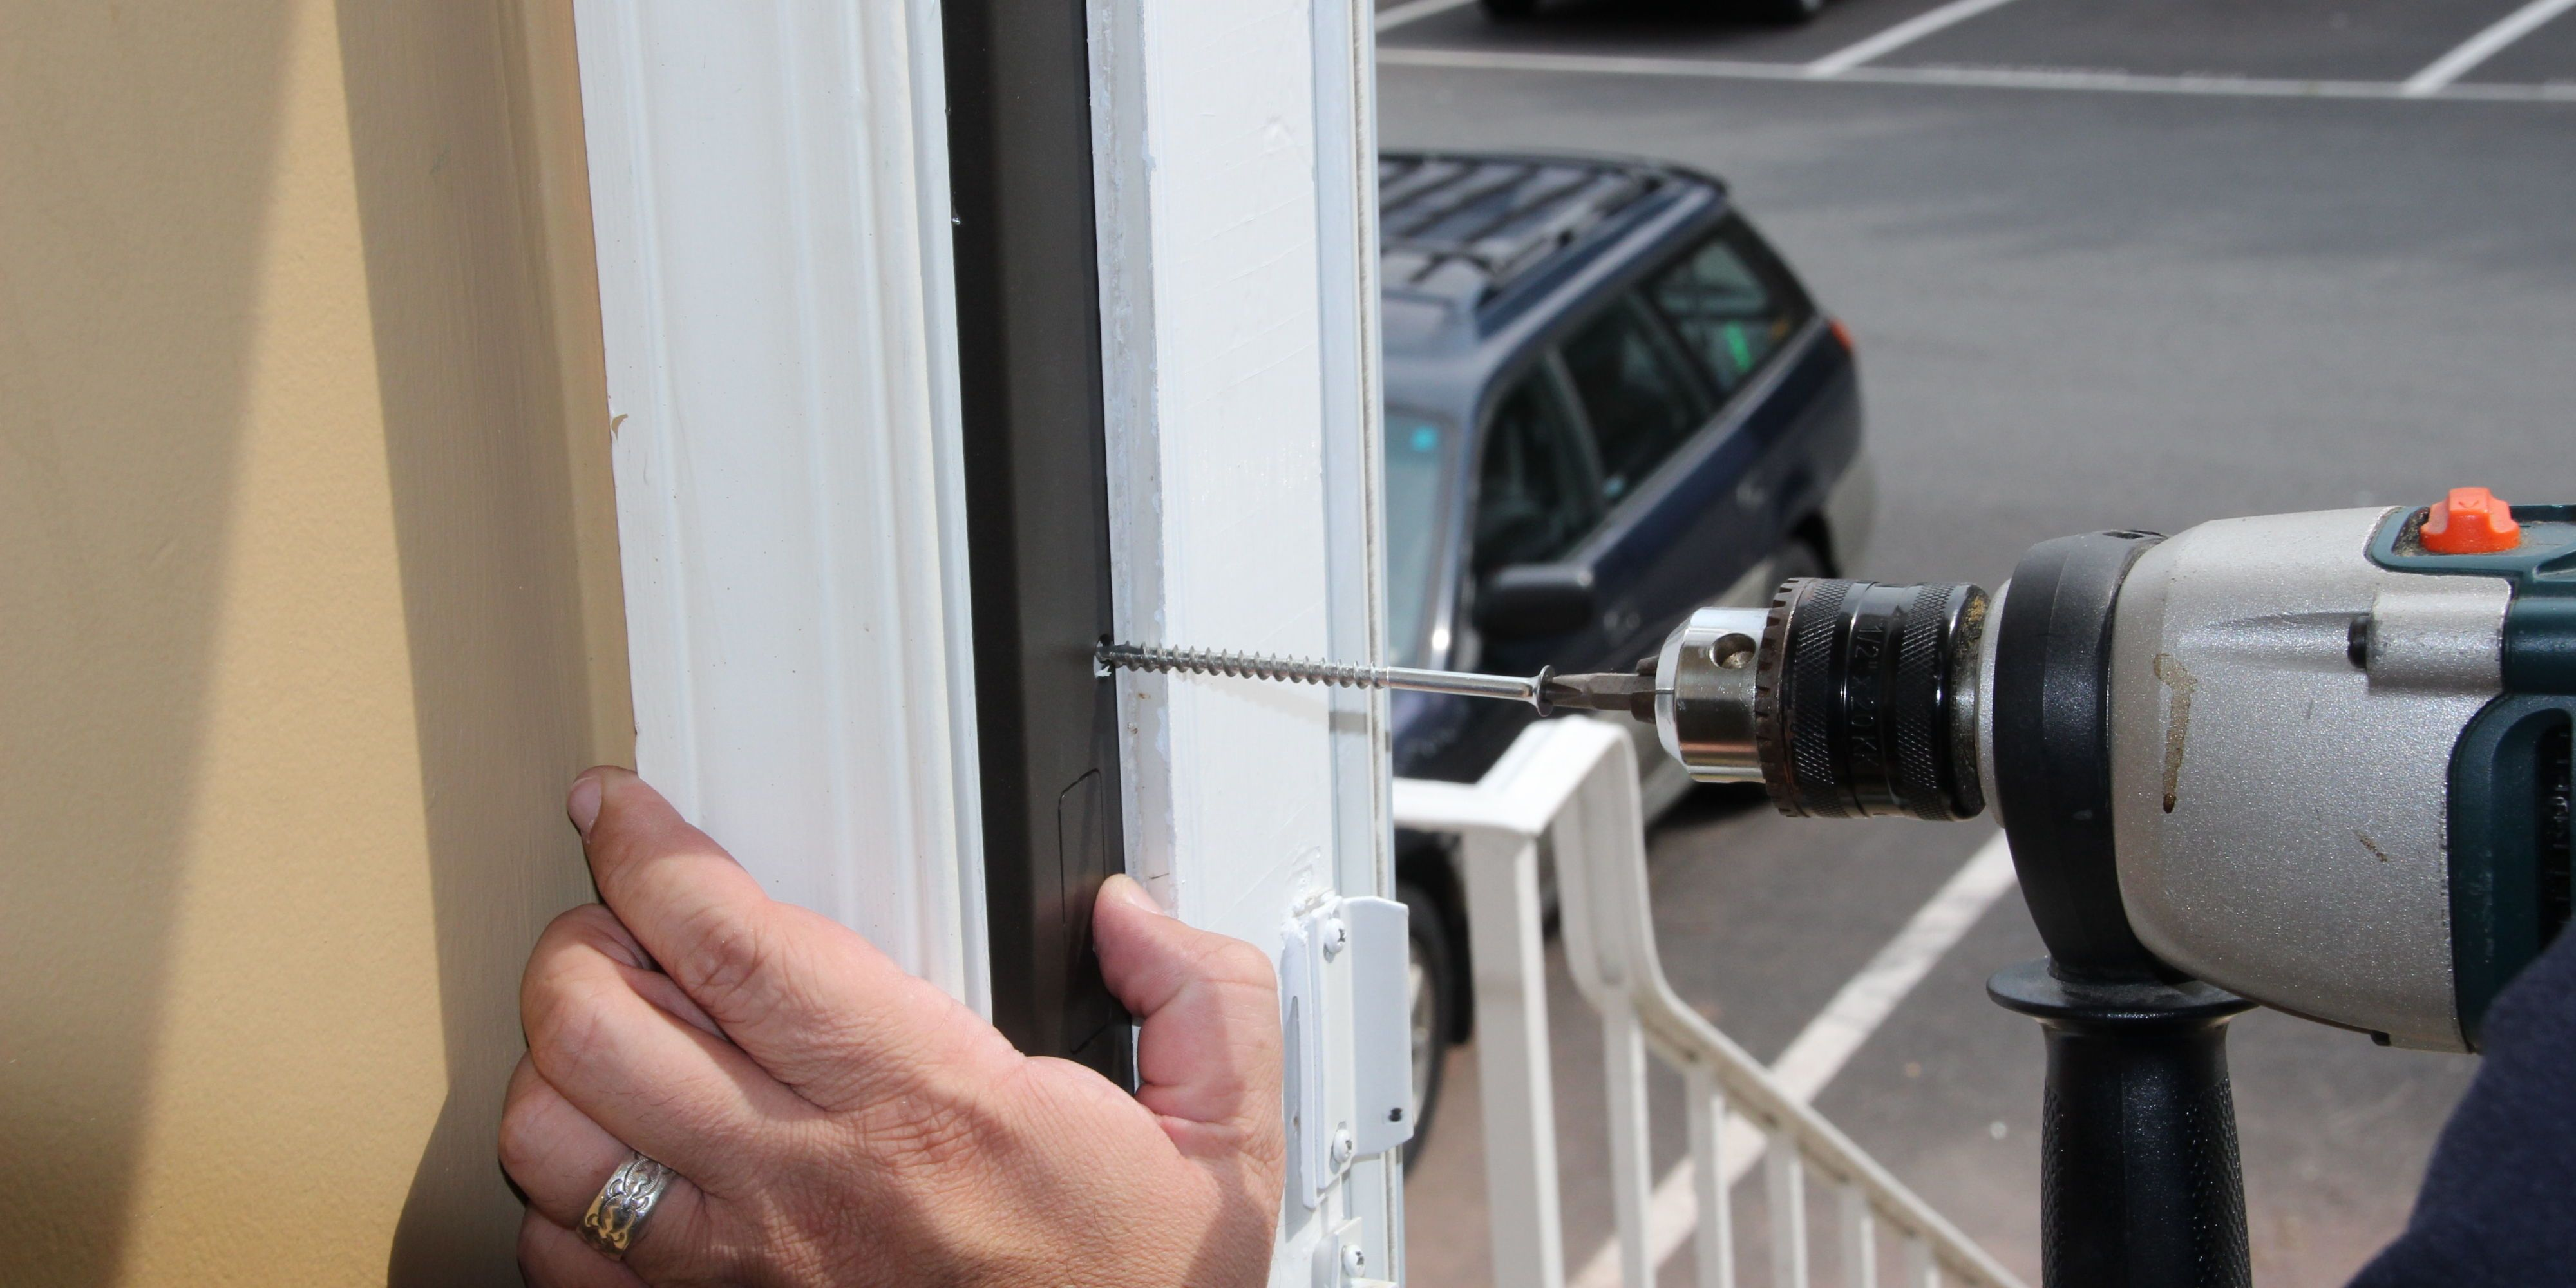 By Brett Martin & 8 Simple Ways to Burglar-Proof Your Home